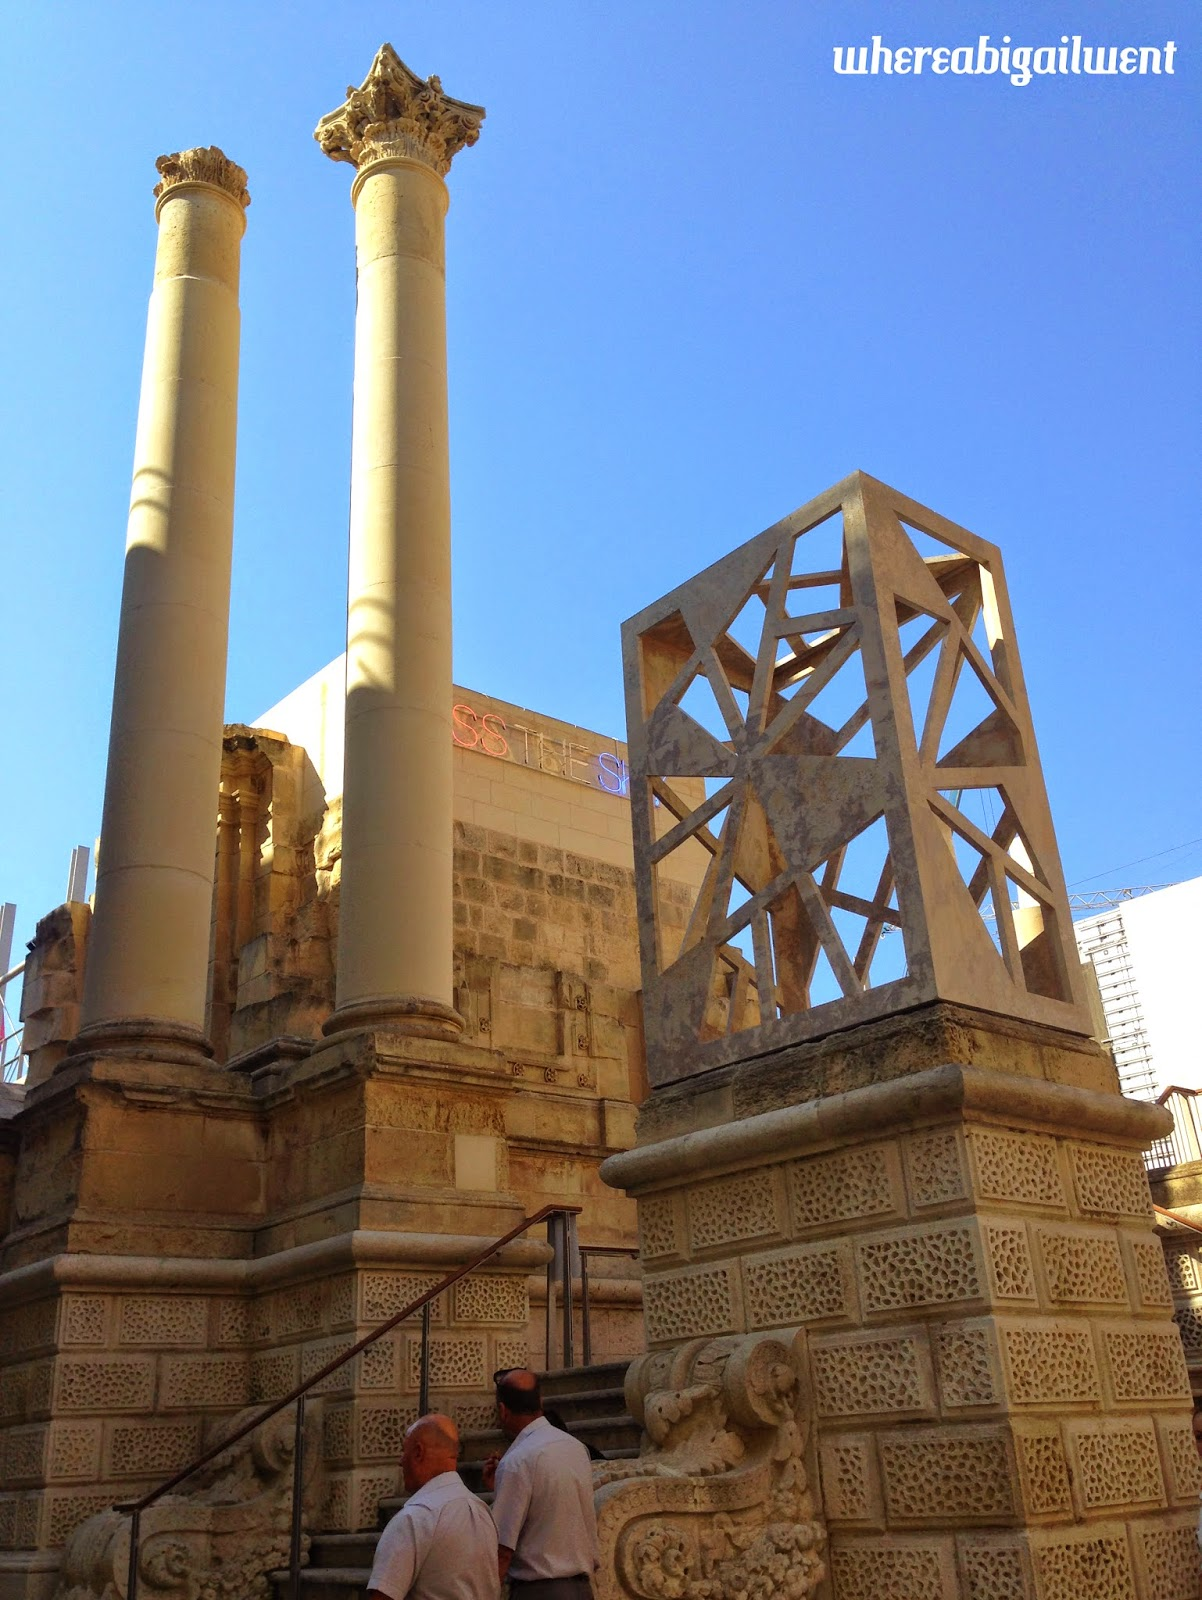 Construction of the New City Gate of Valletta